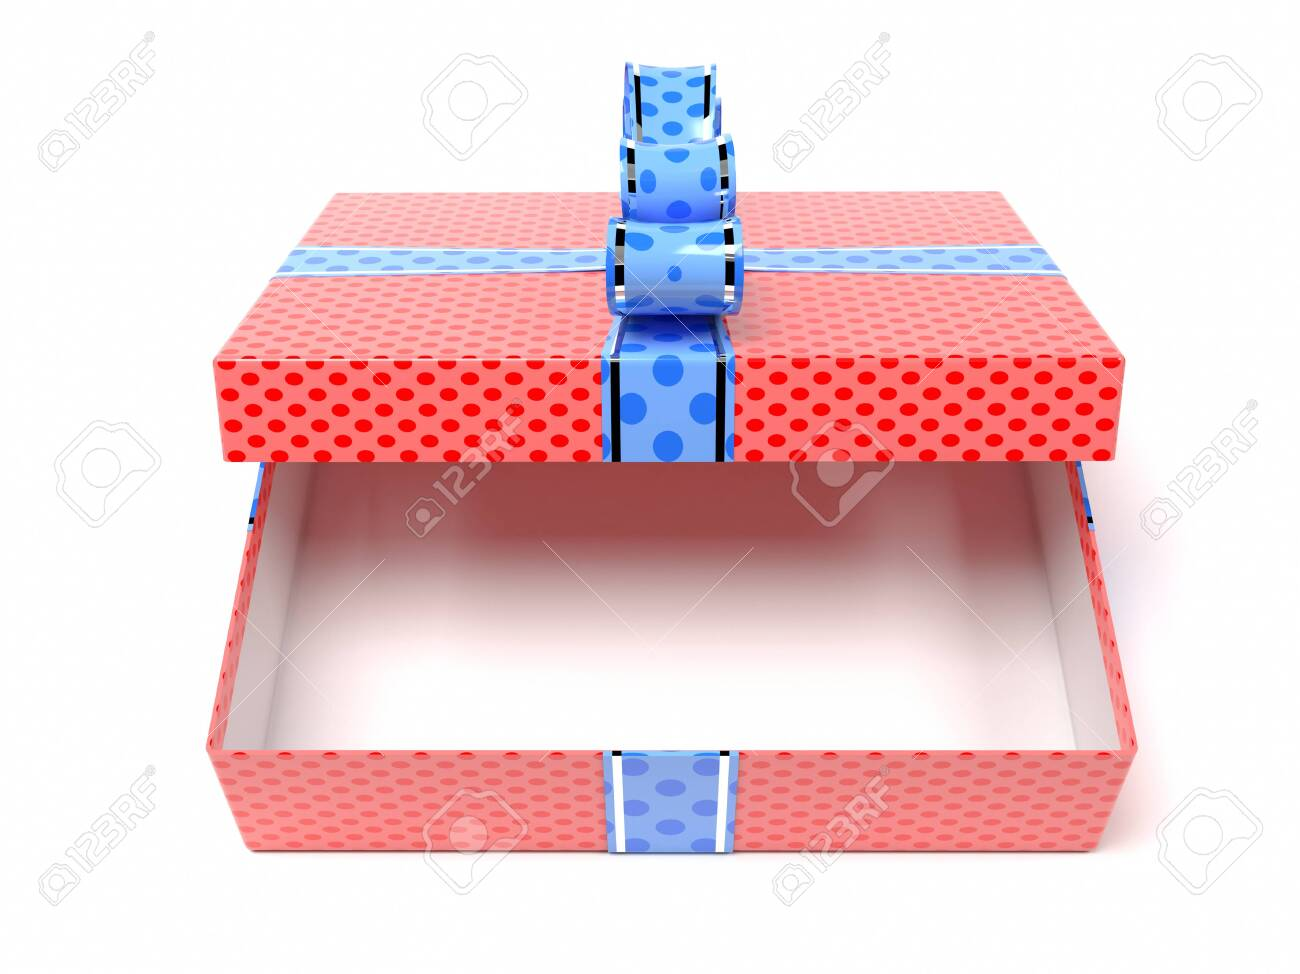 Red gift box with blue duct tape. 3d rendering illustration isolated on white background - 150520885